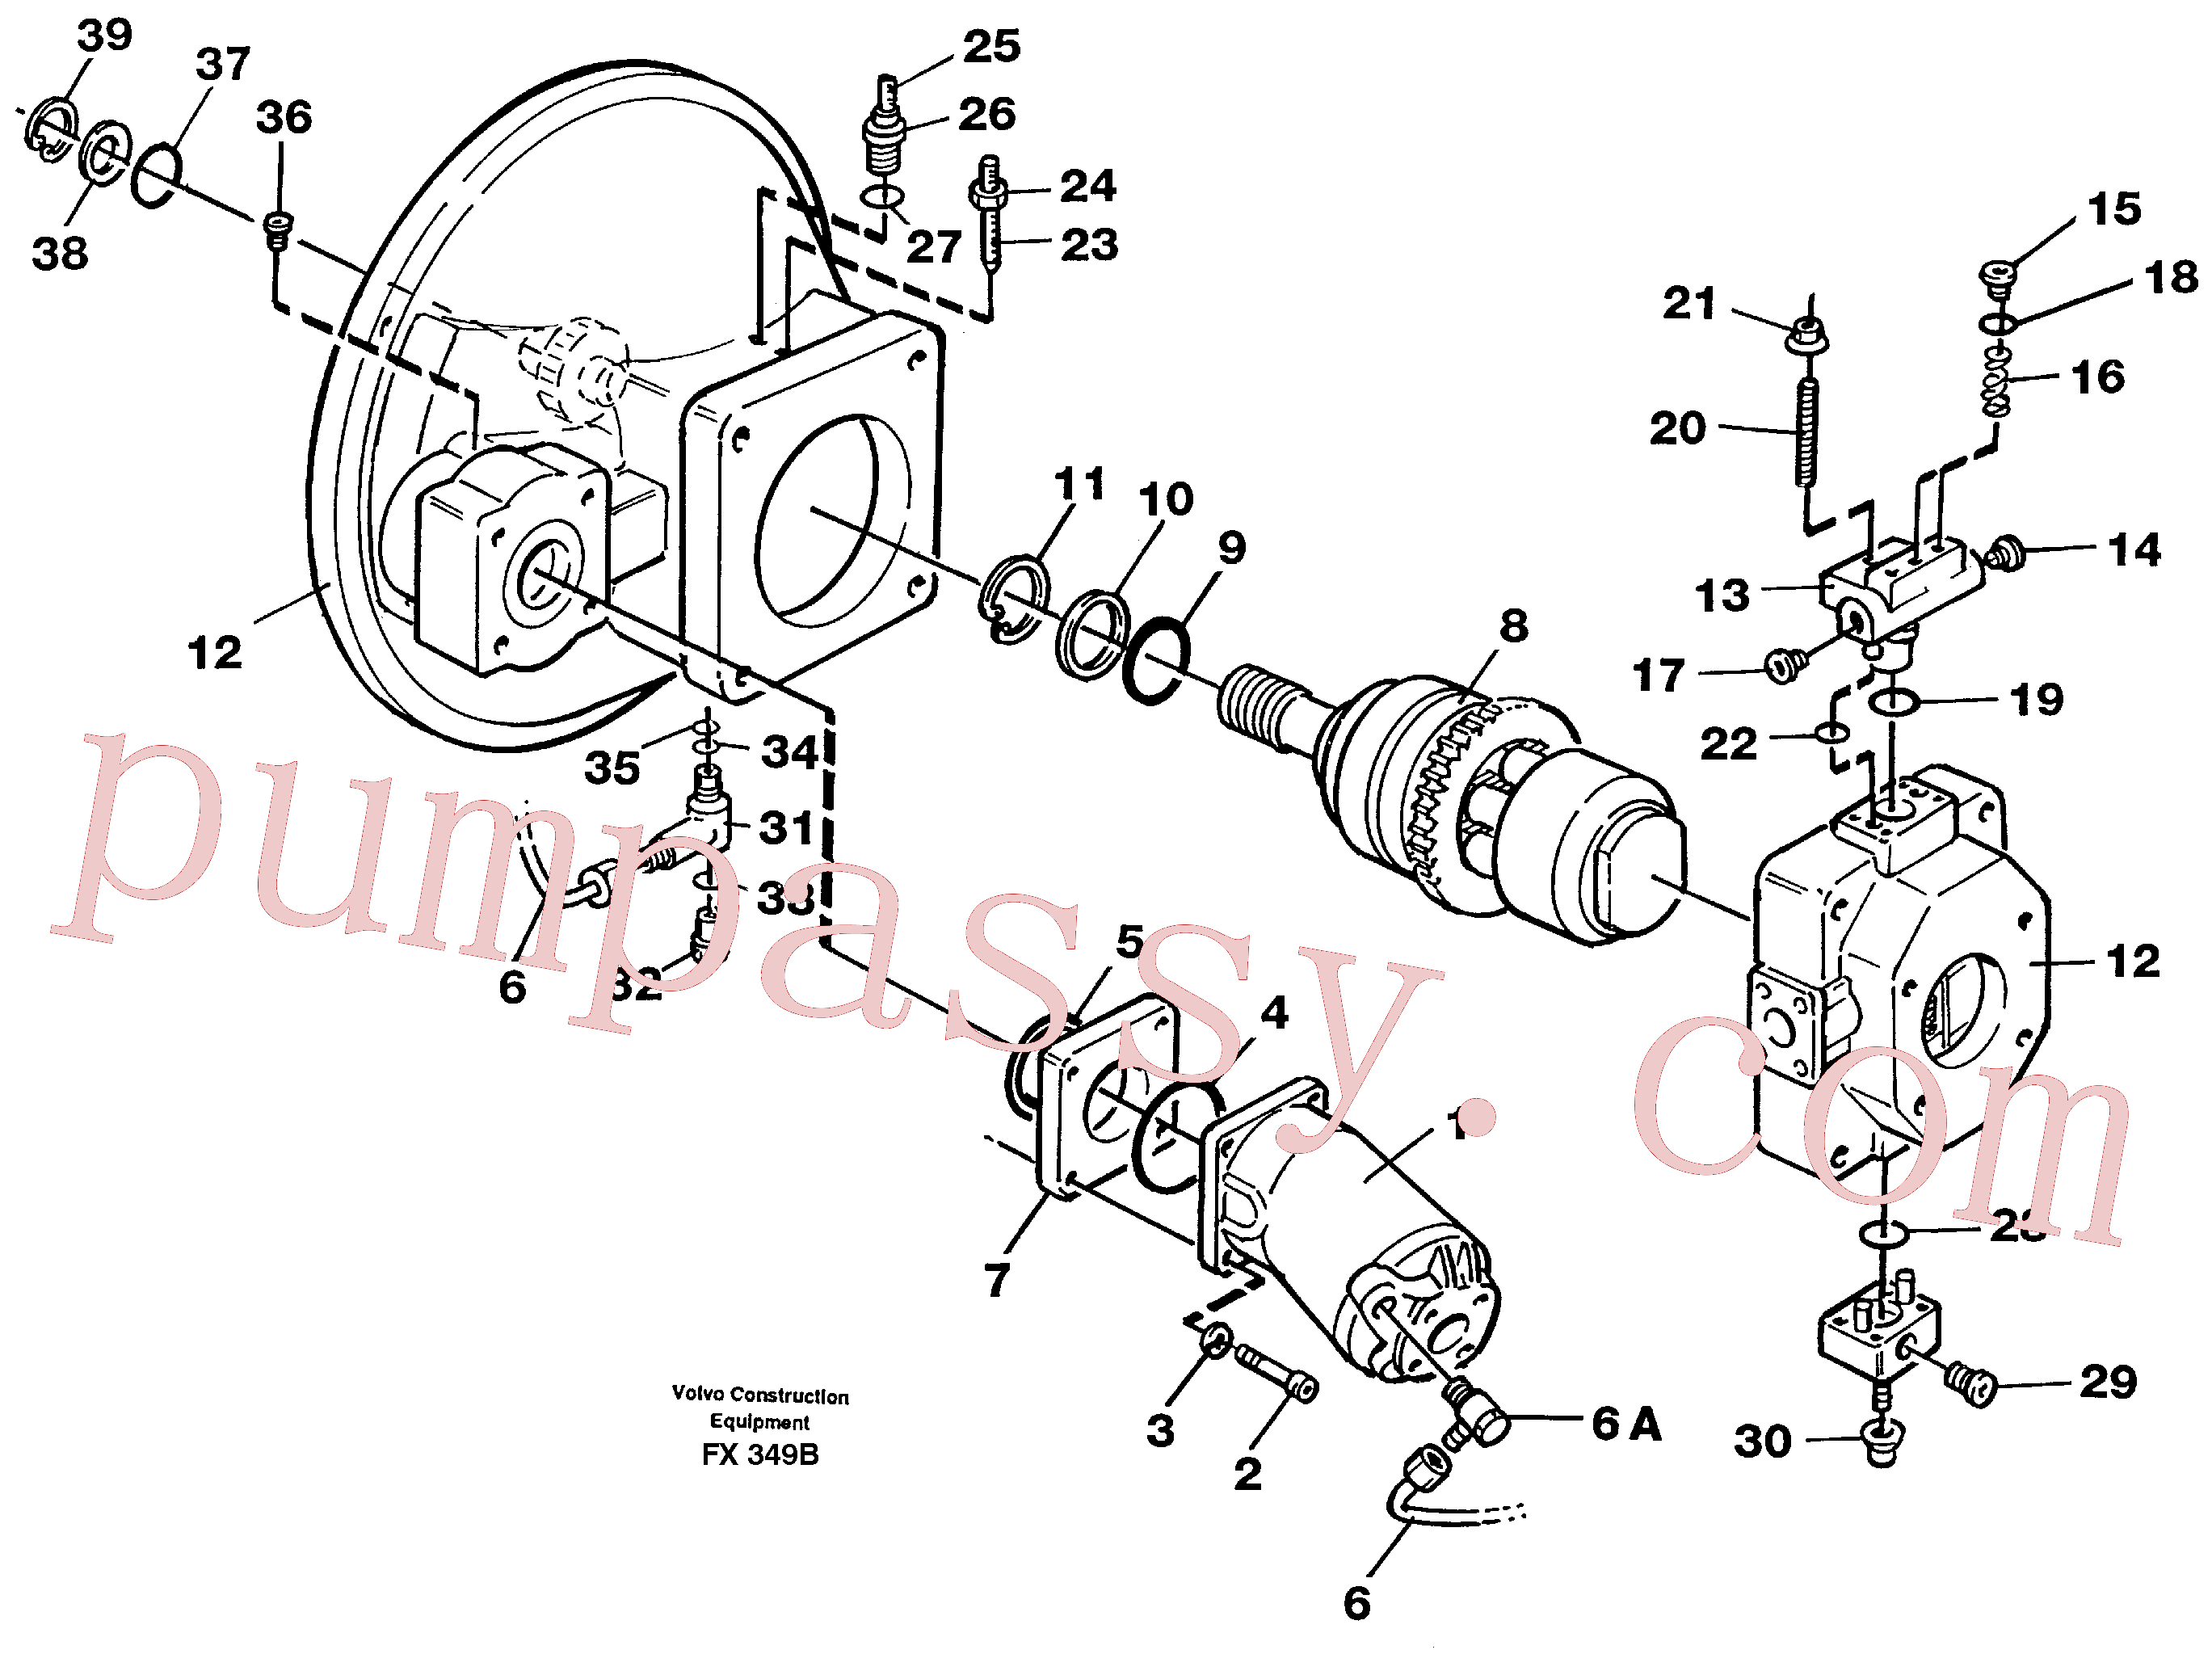 VOE14016903 for Volvo Pump gear box(FX349B assembly)